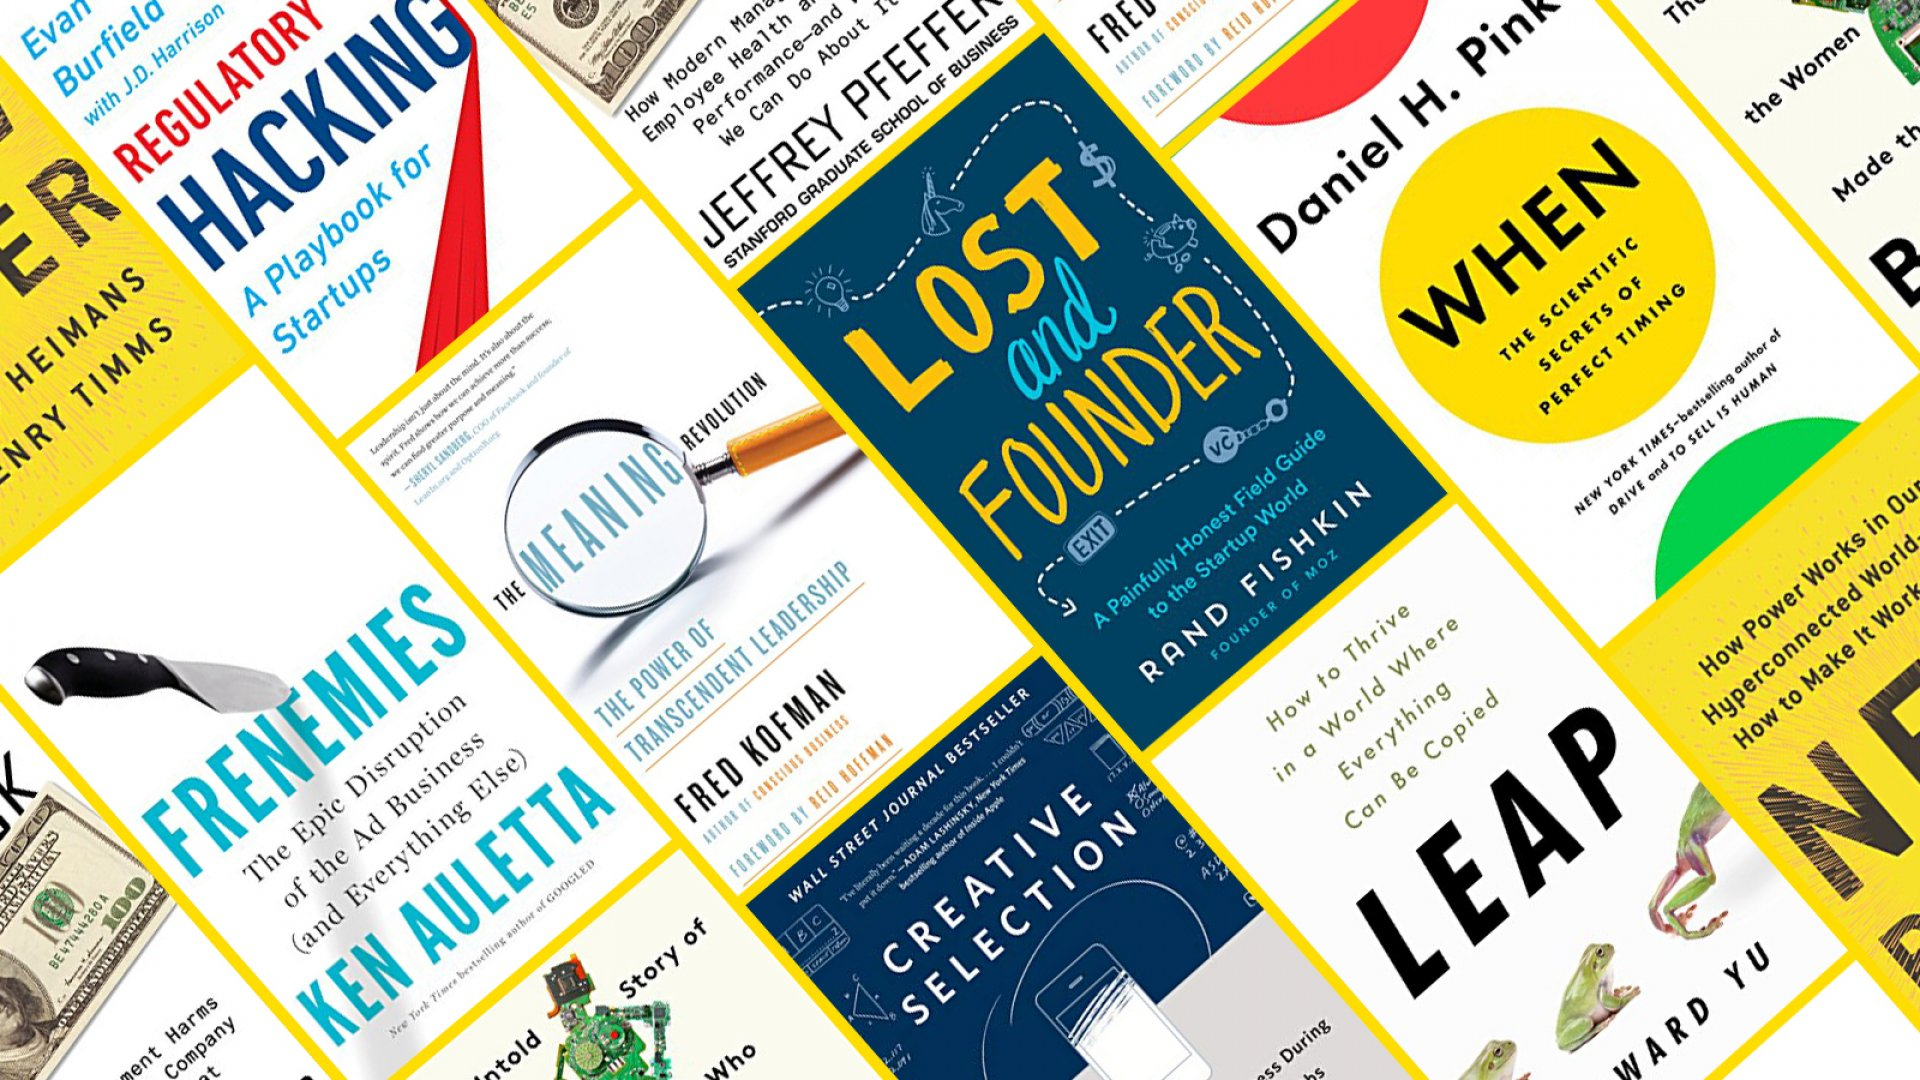 The 10 Best Business Books of 2018